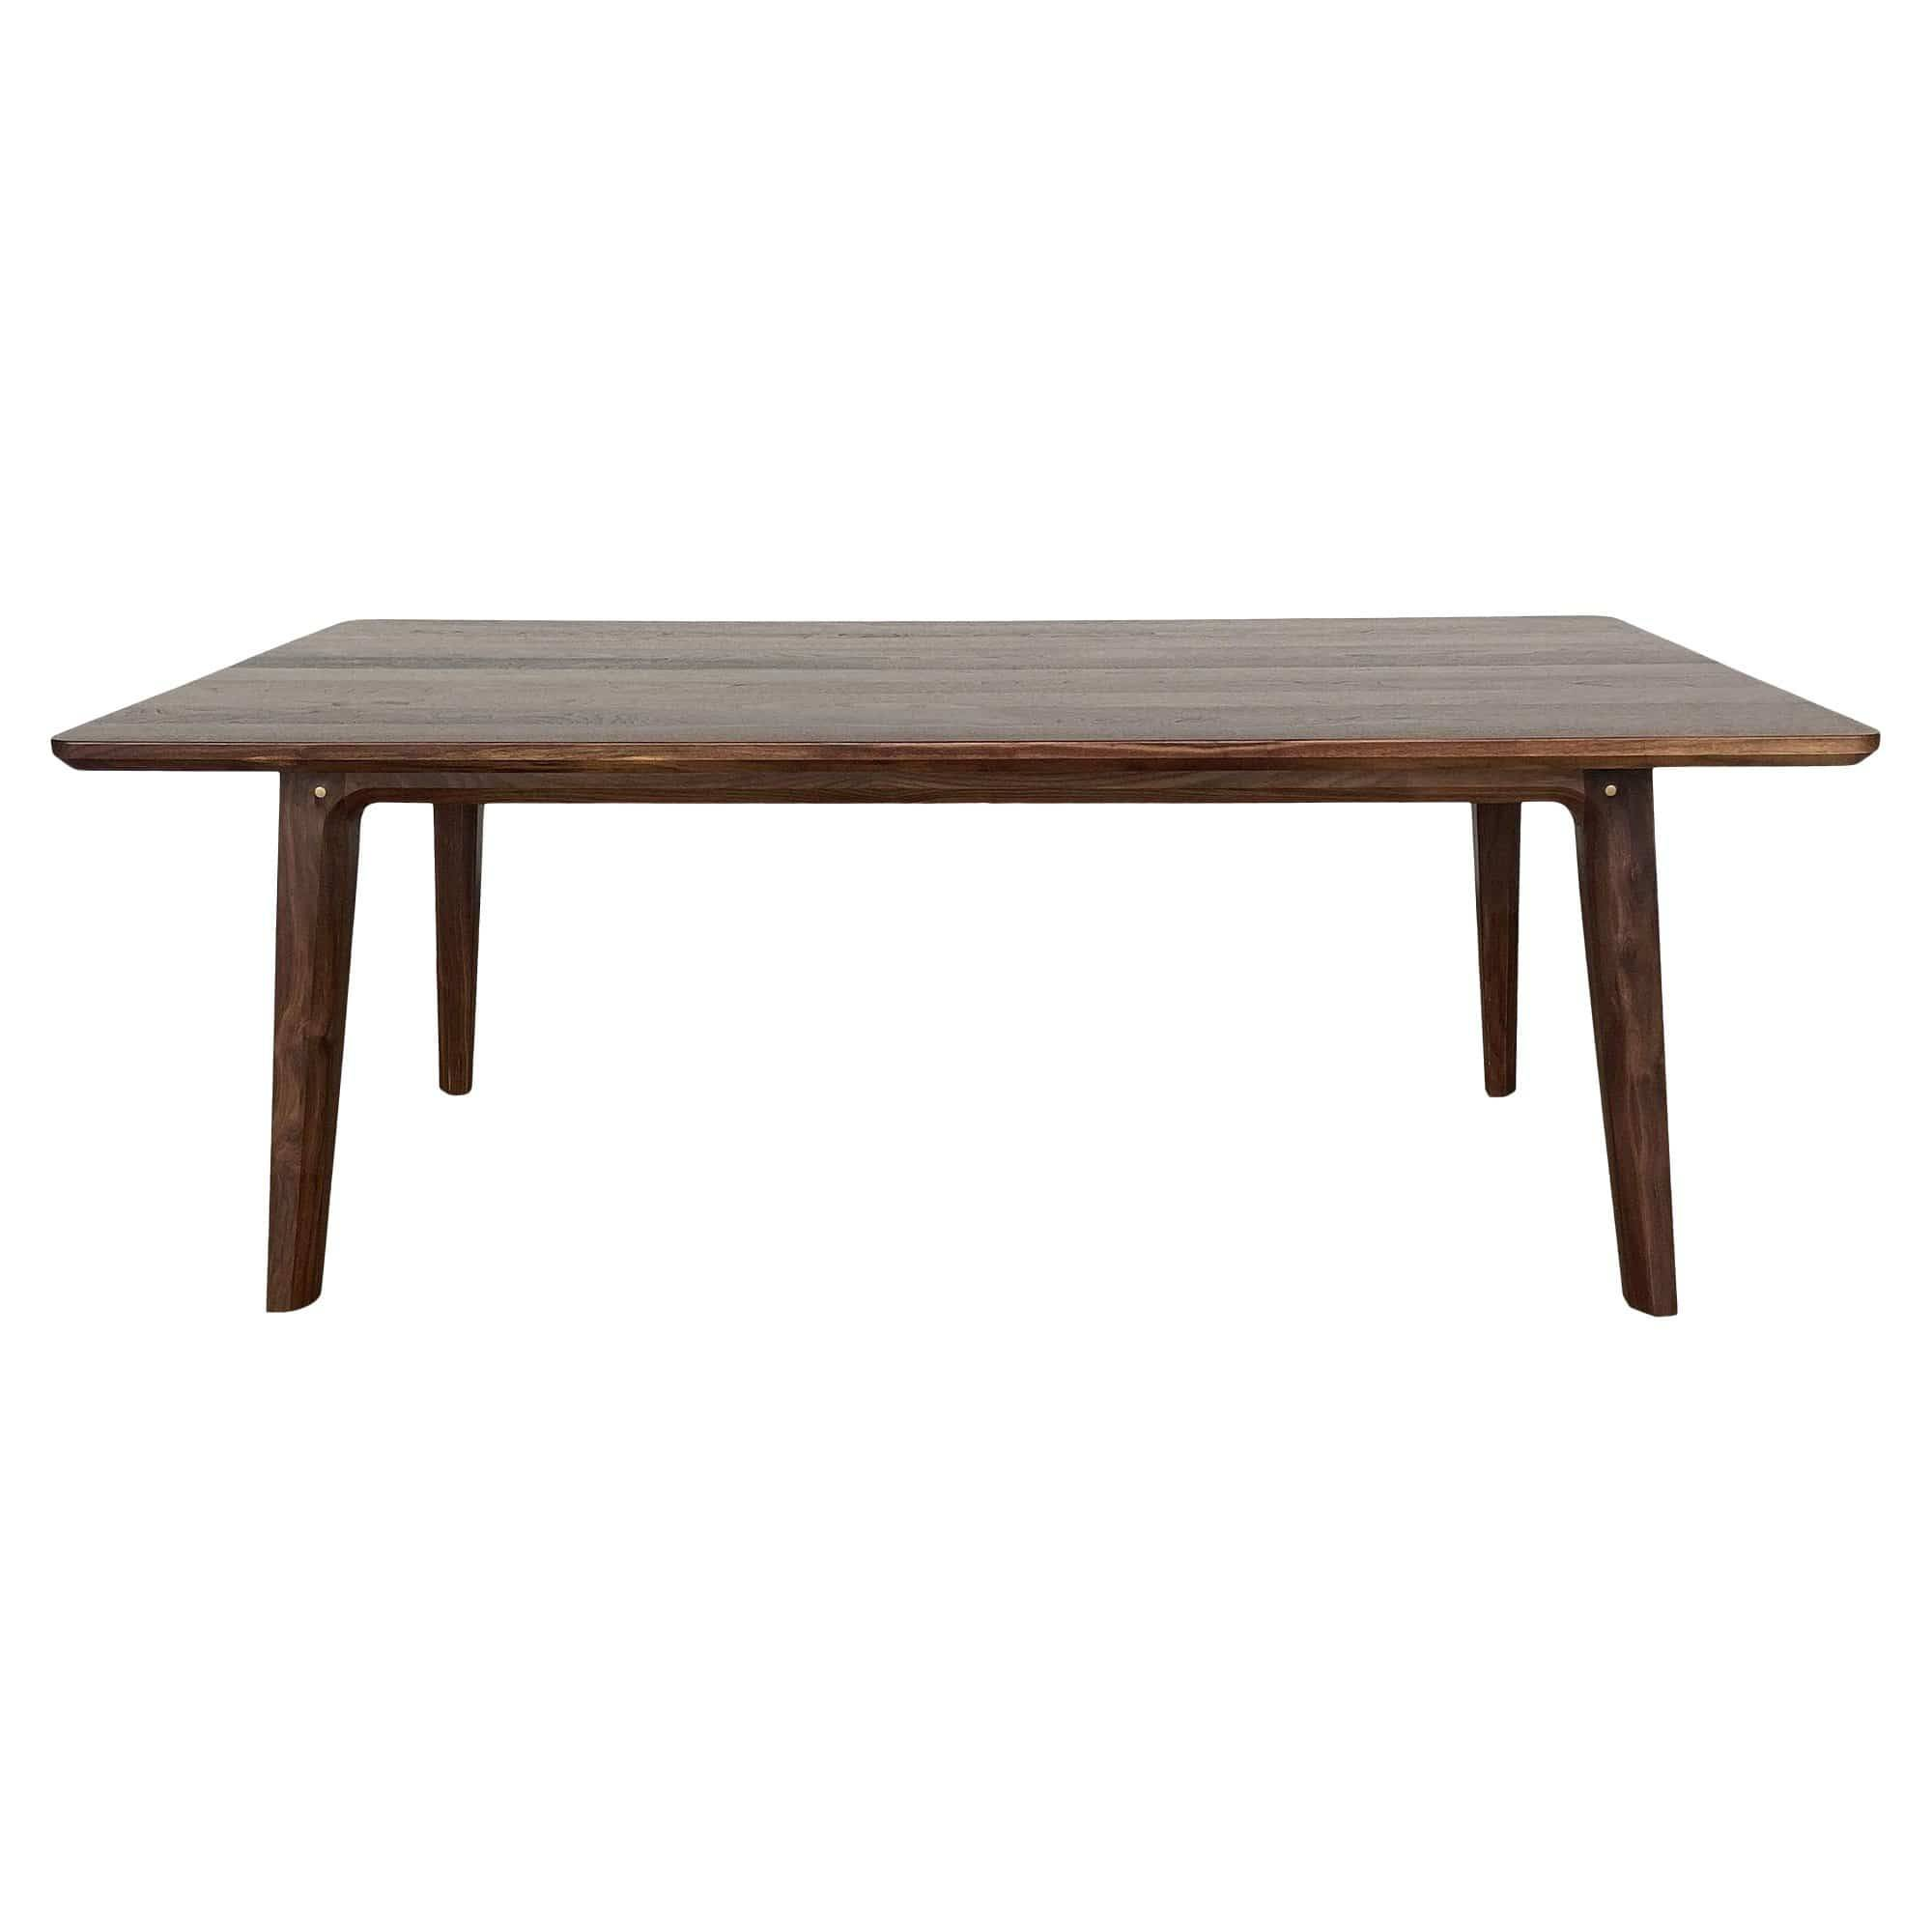 Creative Labs Summit Dining Table in Walnut